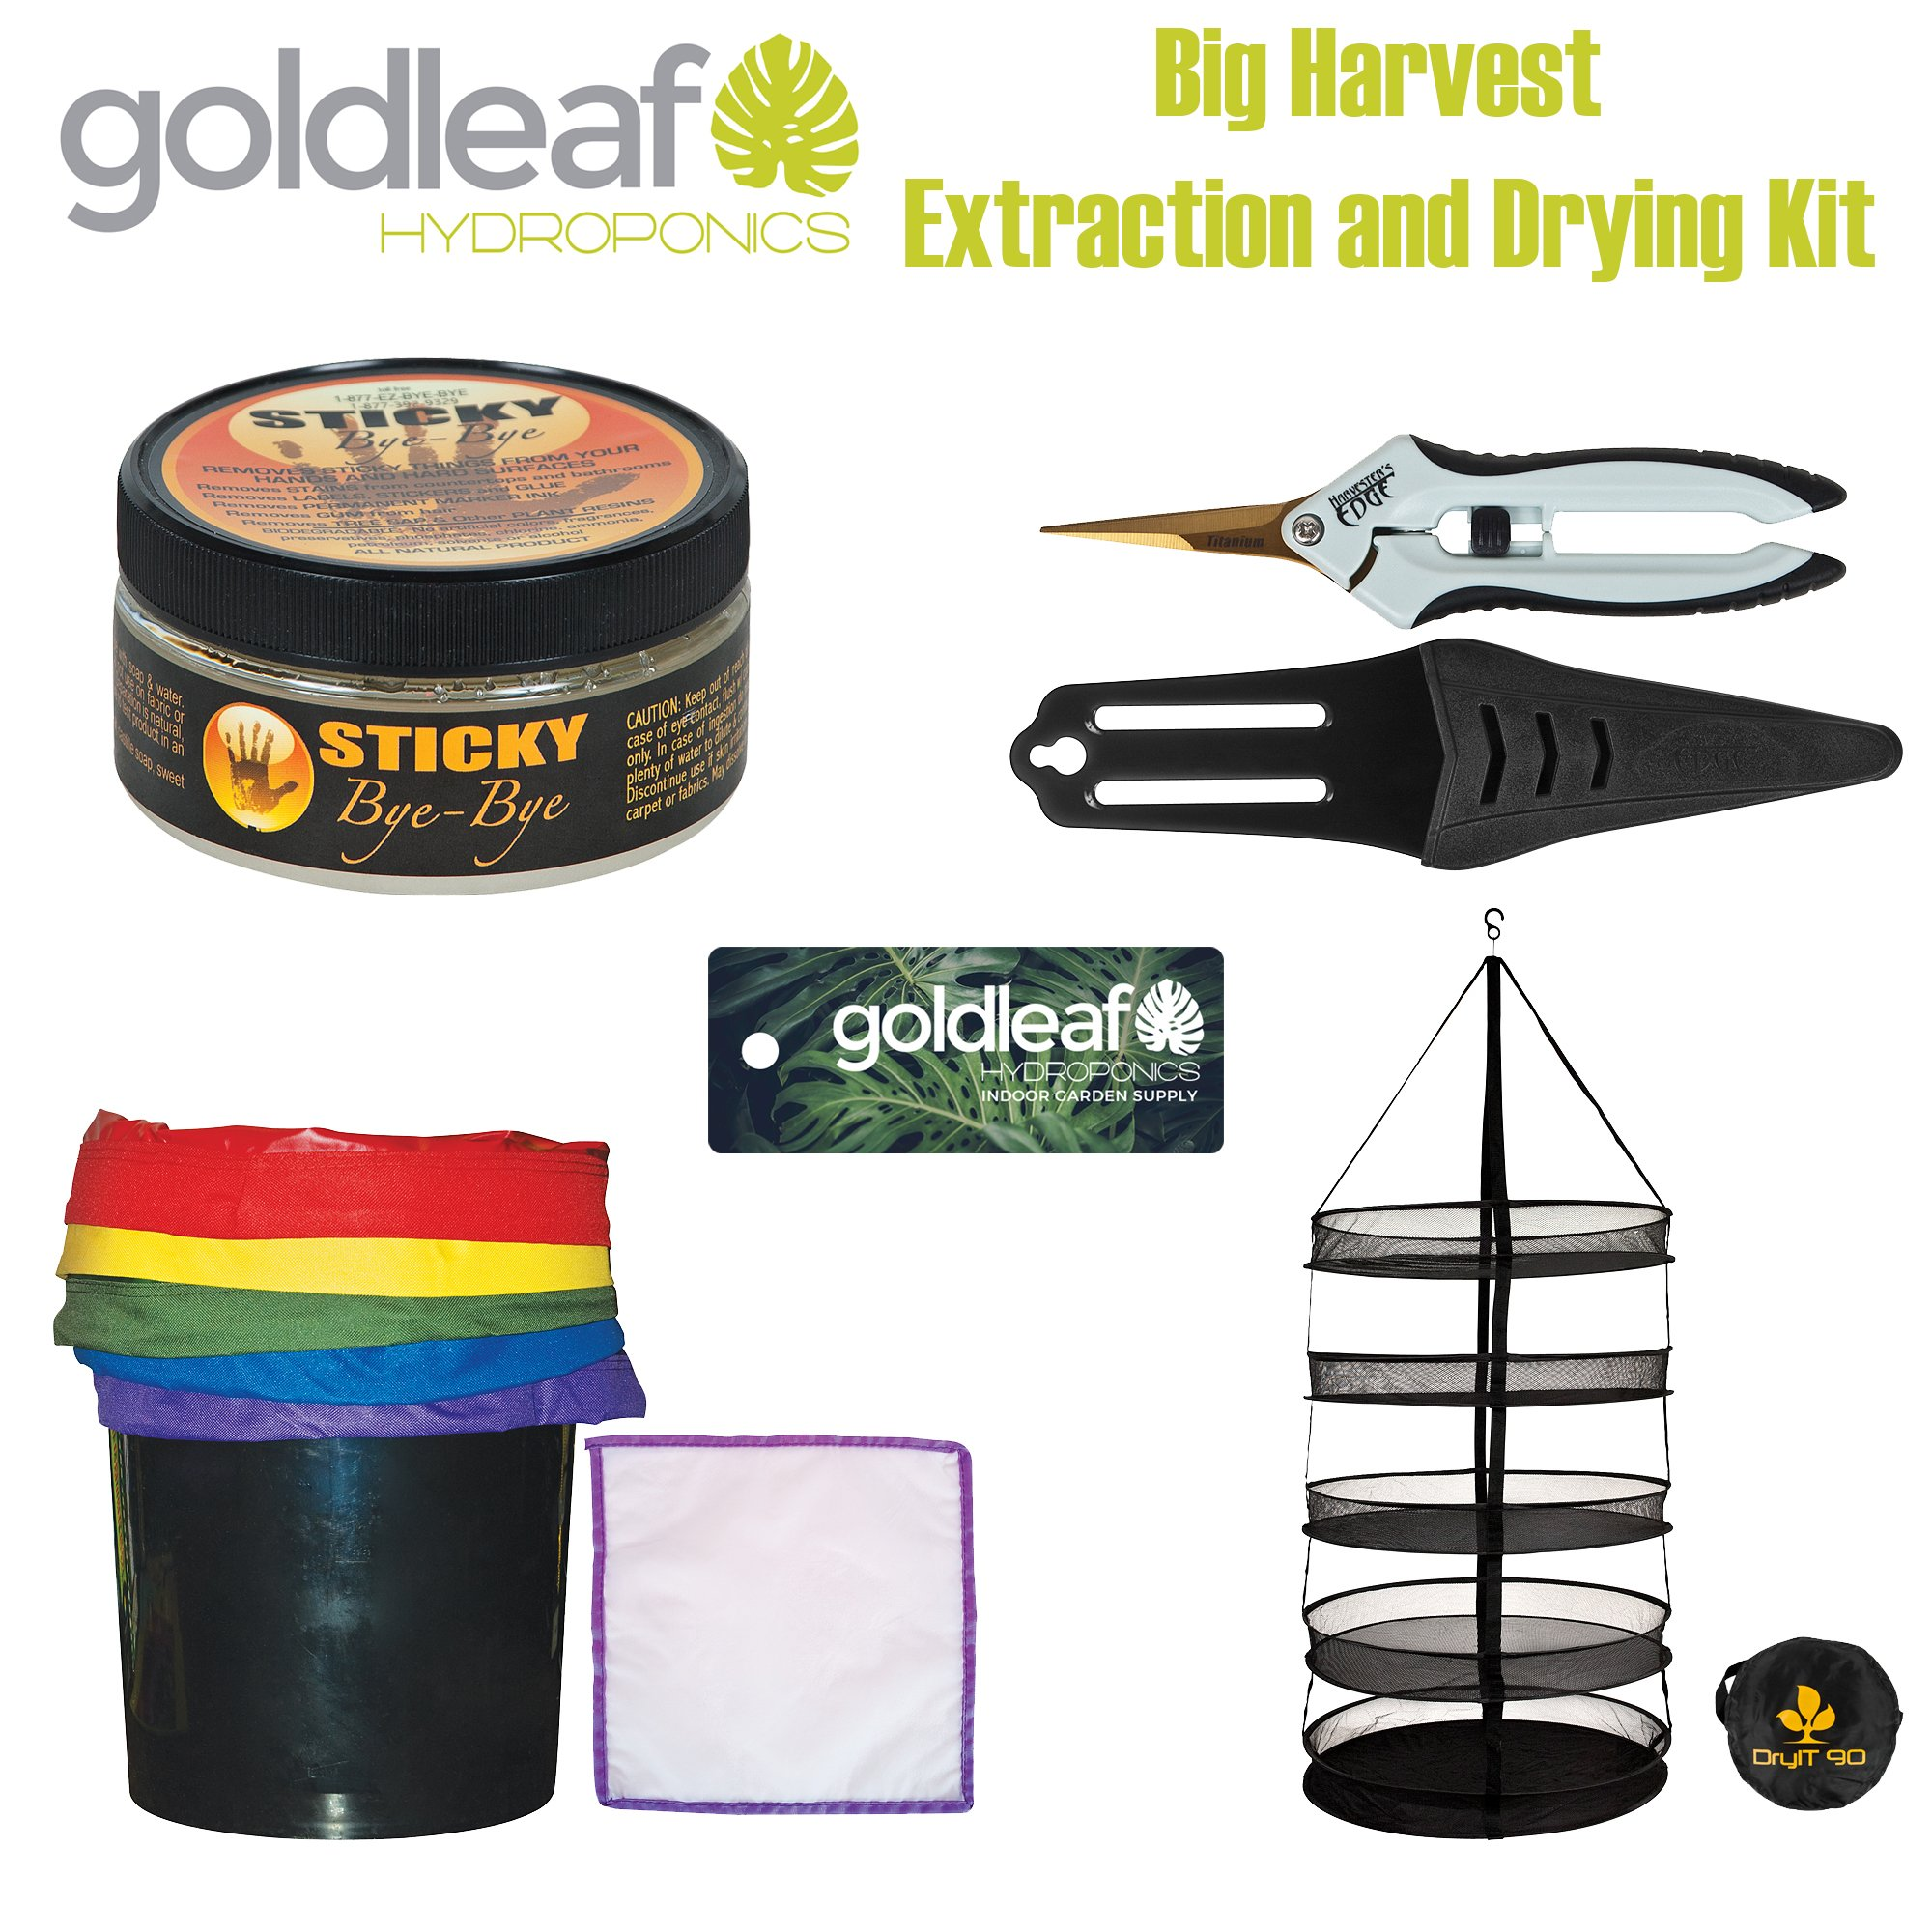 Big Harvest Essential Oil Extraction and Drying Kit with Micropore Bags, Rack, Trimmers & Cleaning Solution by Goldleaf Hydroponics